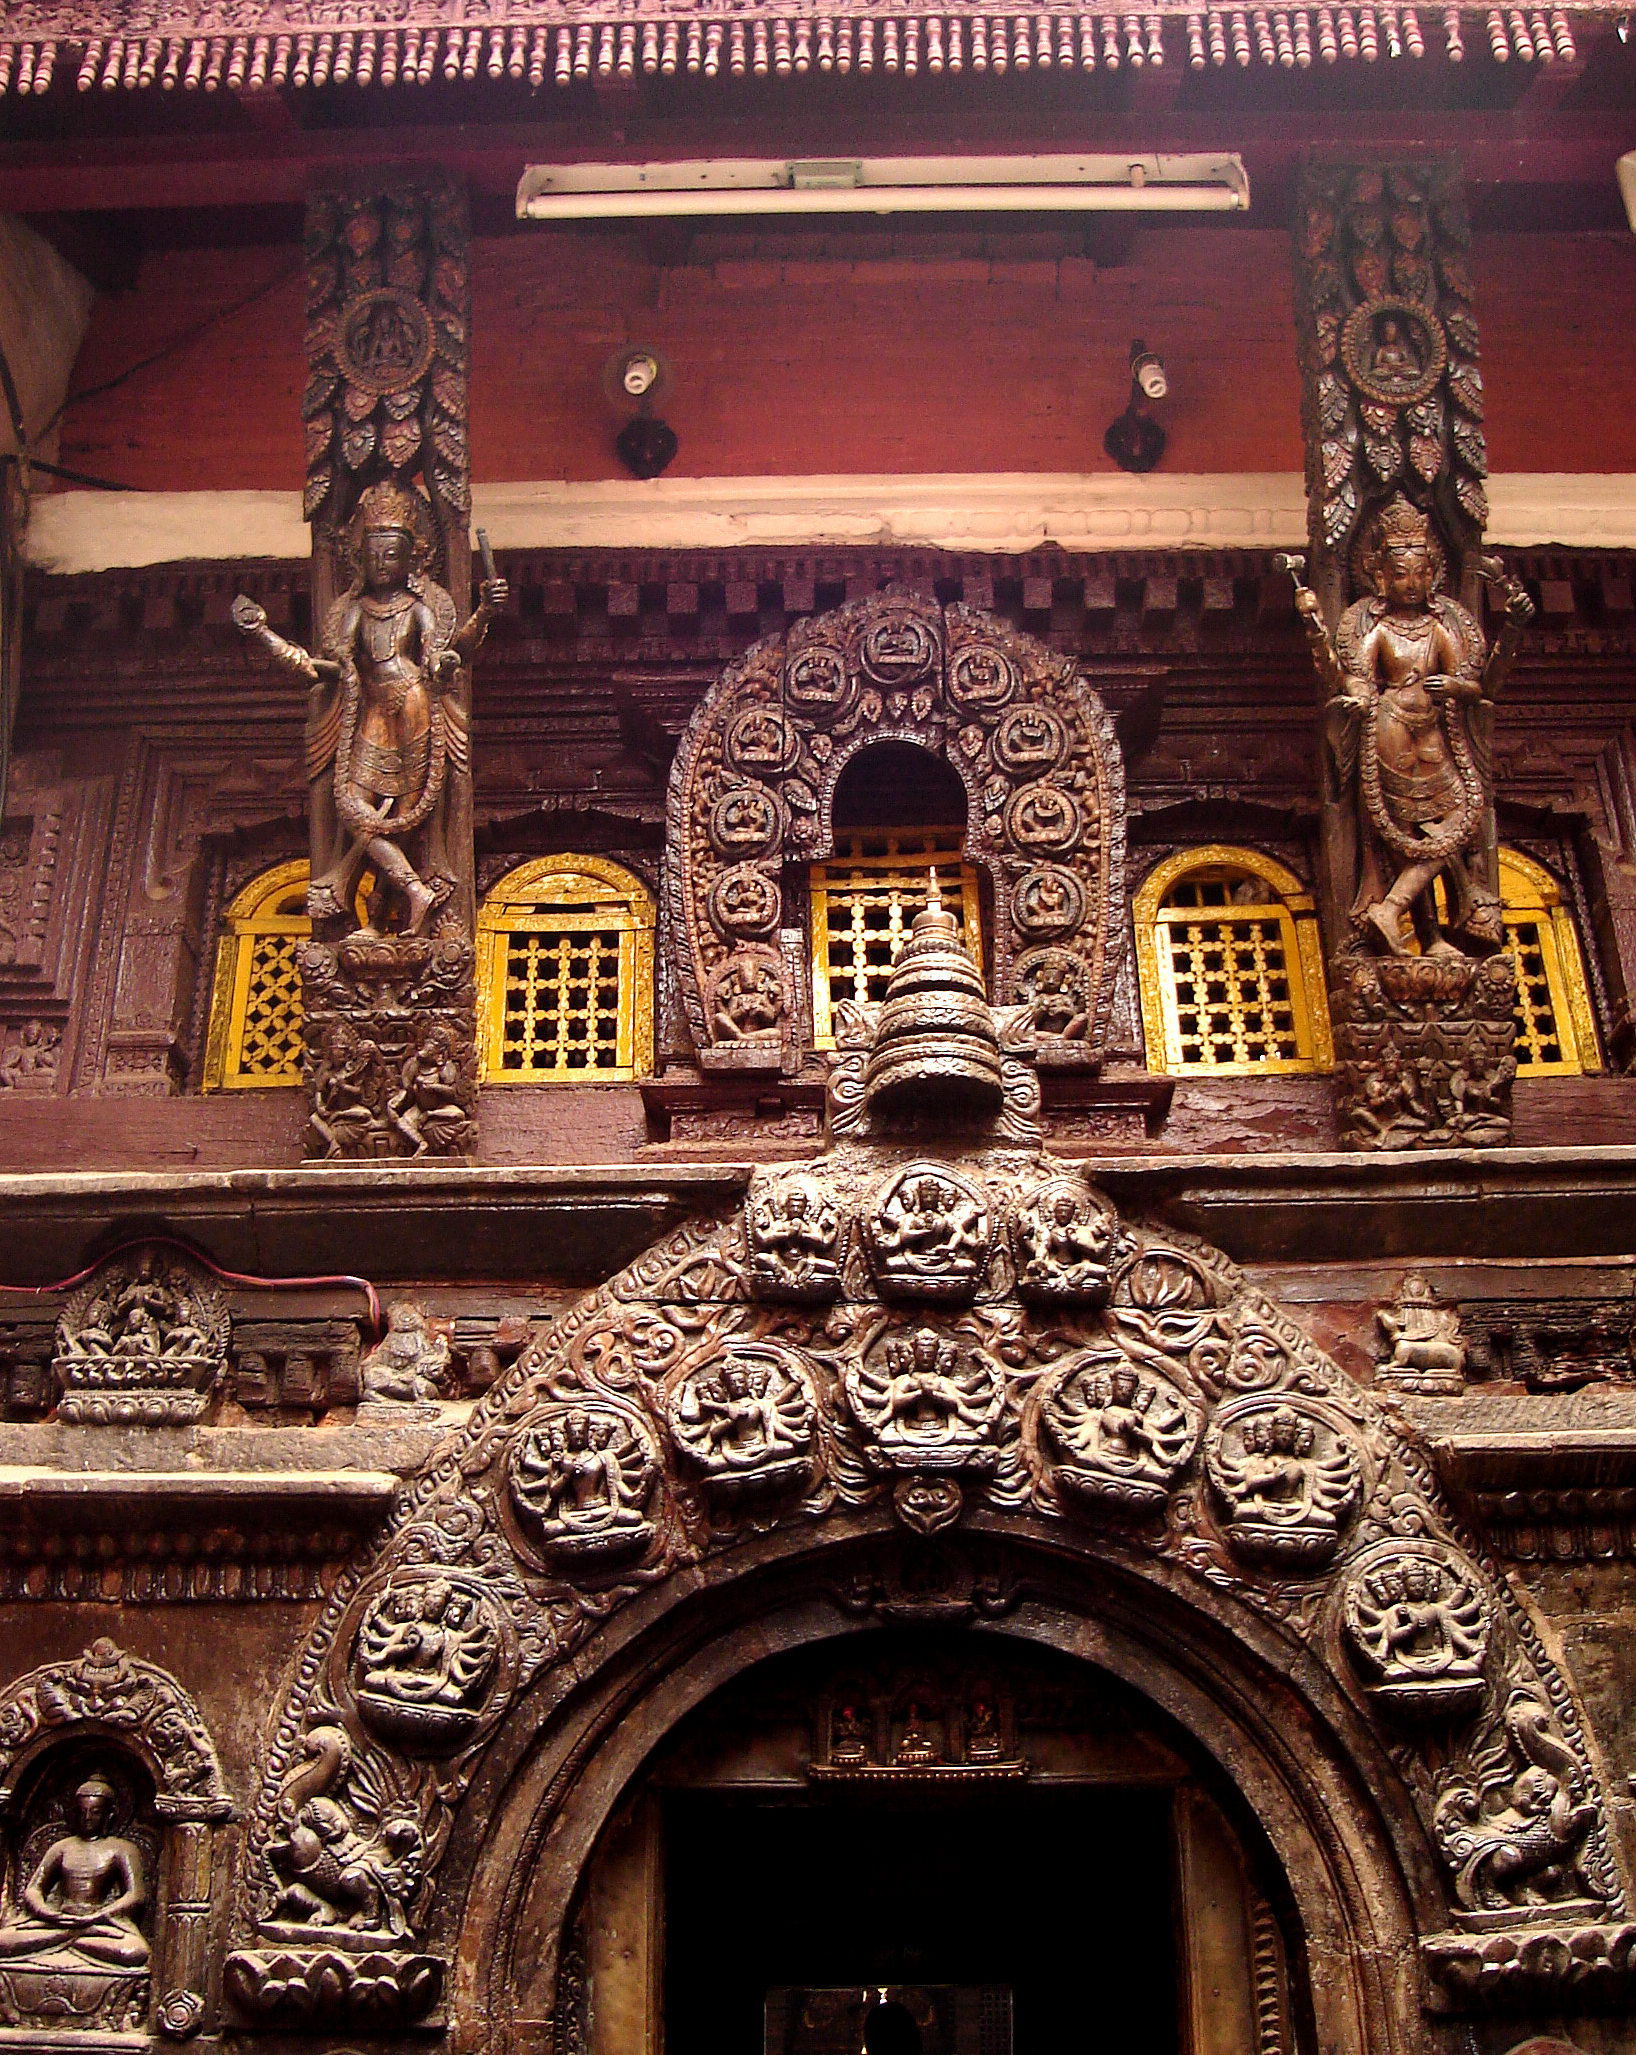 TEMPLE CARVINGS AT ENTRANCE TO PATAN GOLDEN TEMPLE